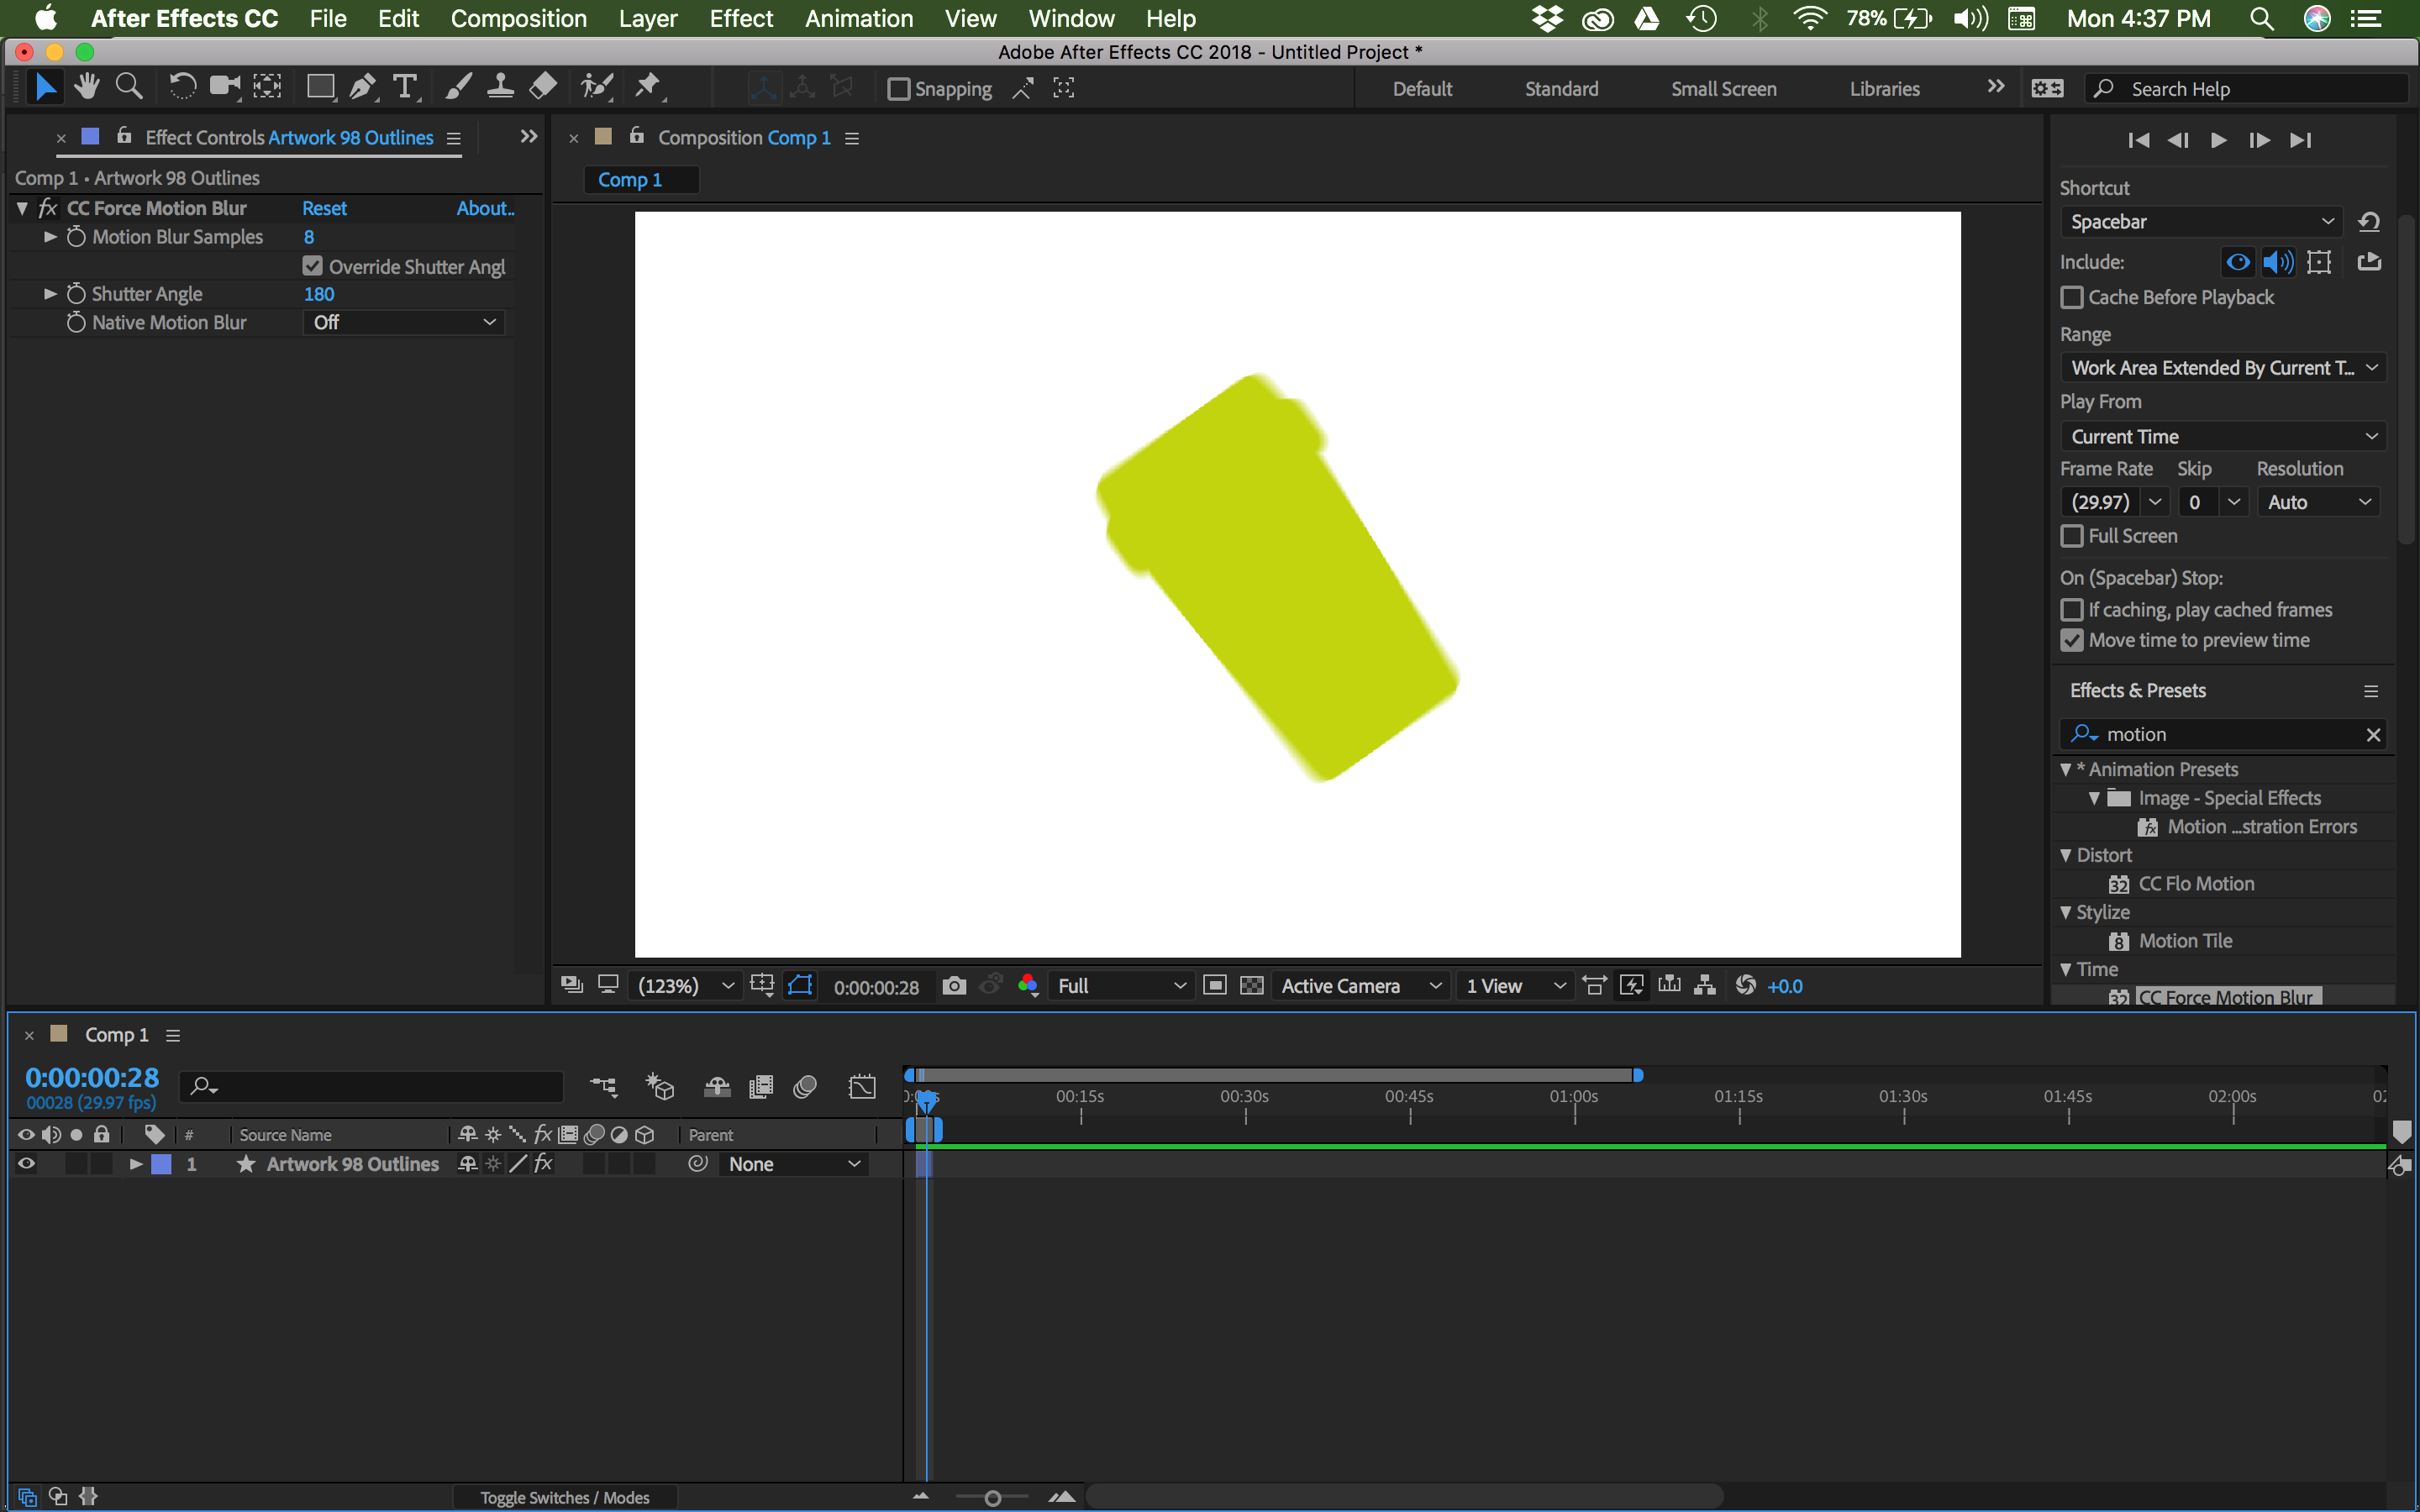 Bodymovin - My animations are exporting without capturing